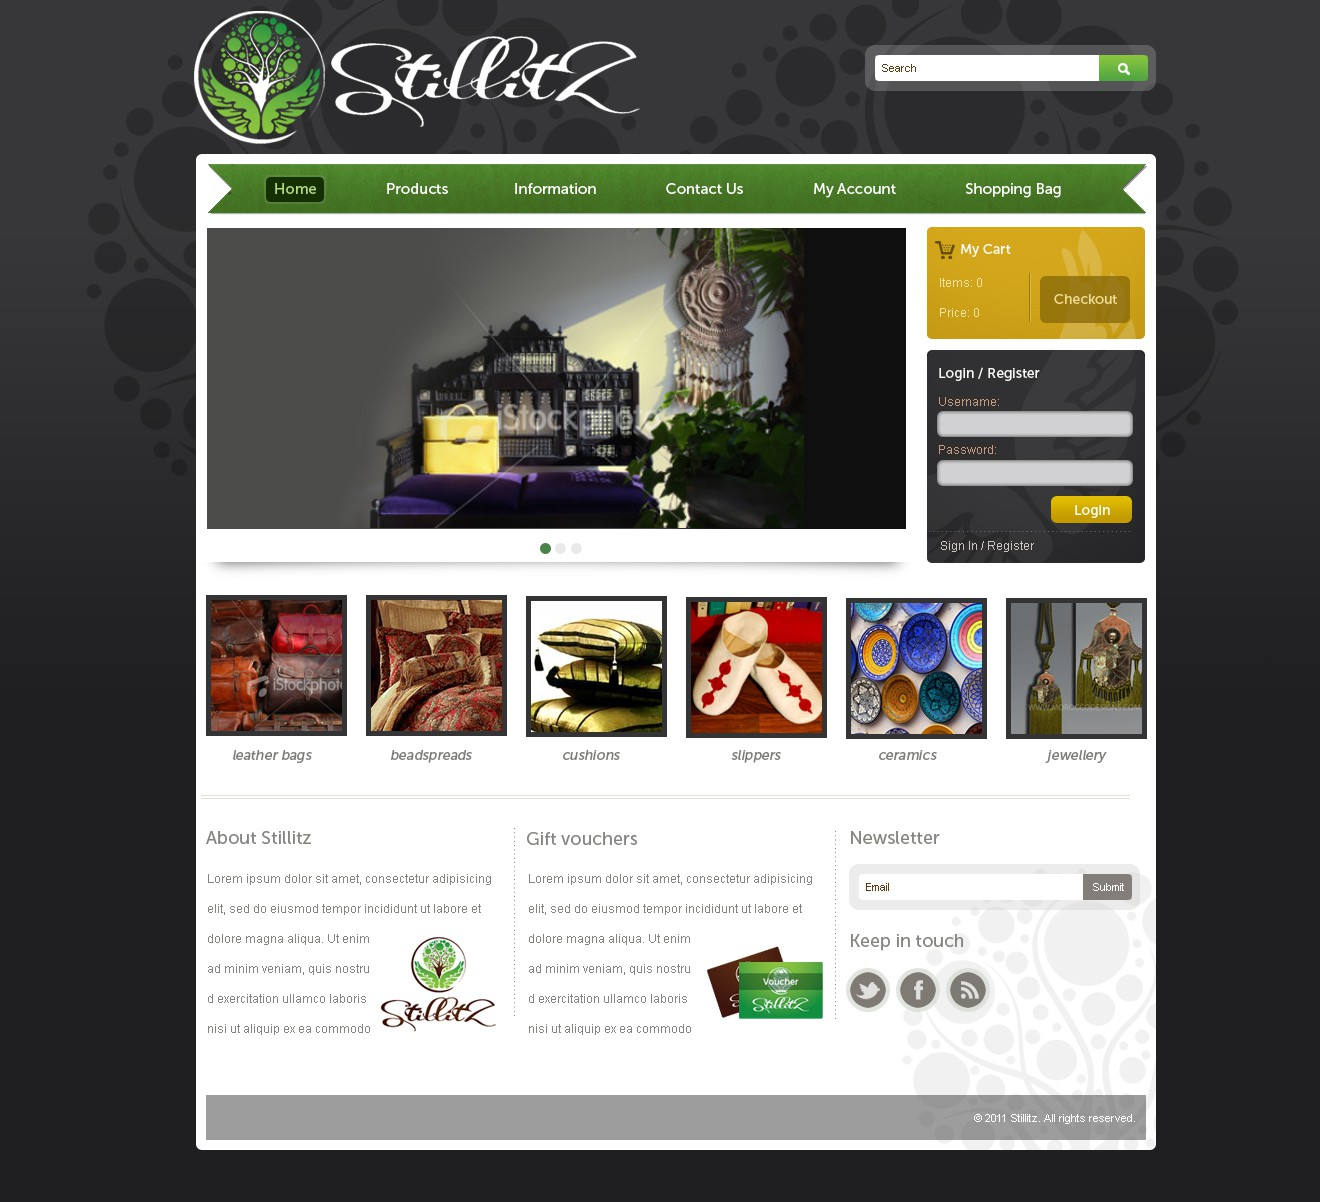 Stillitz  needs a new website design